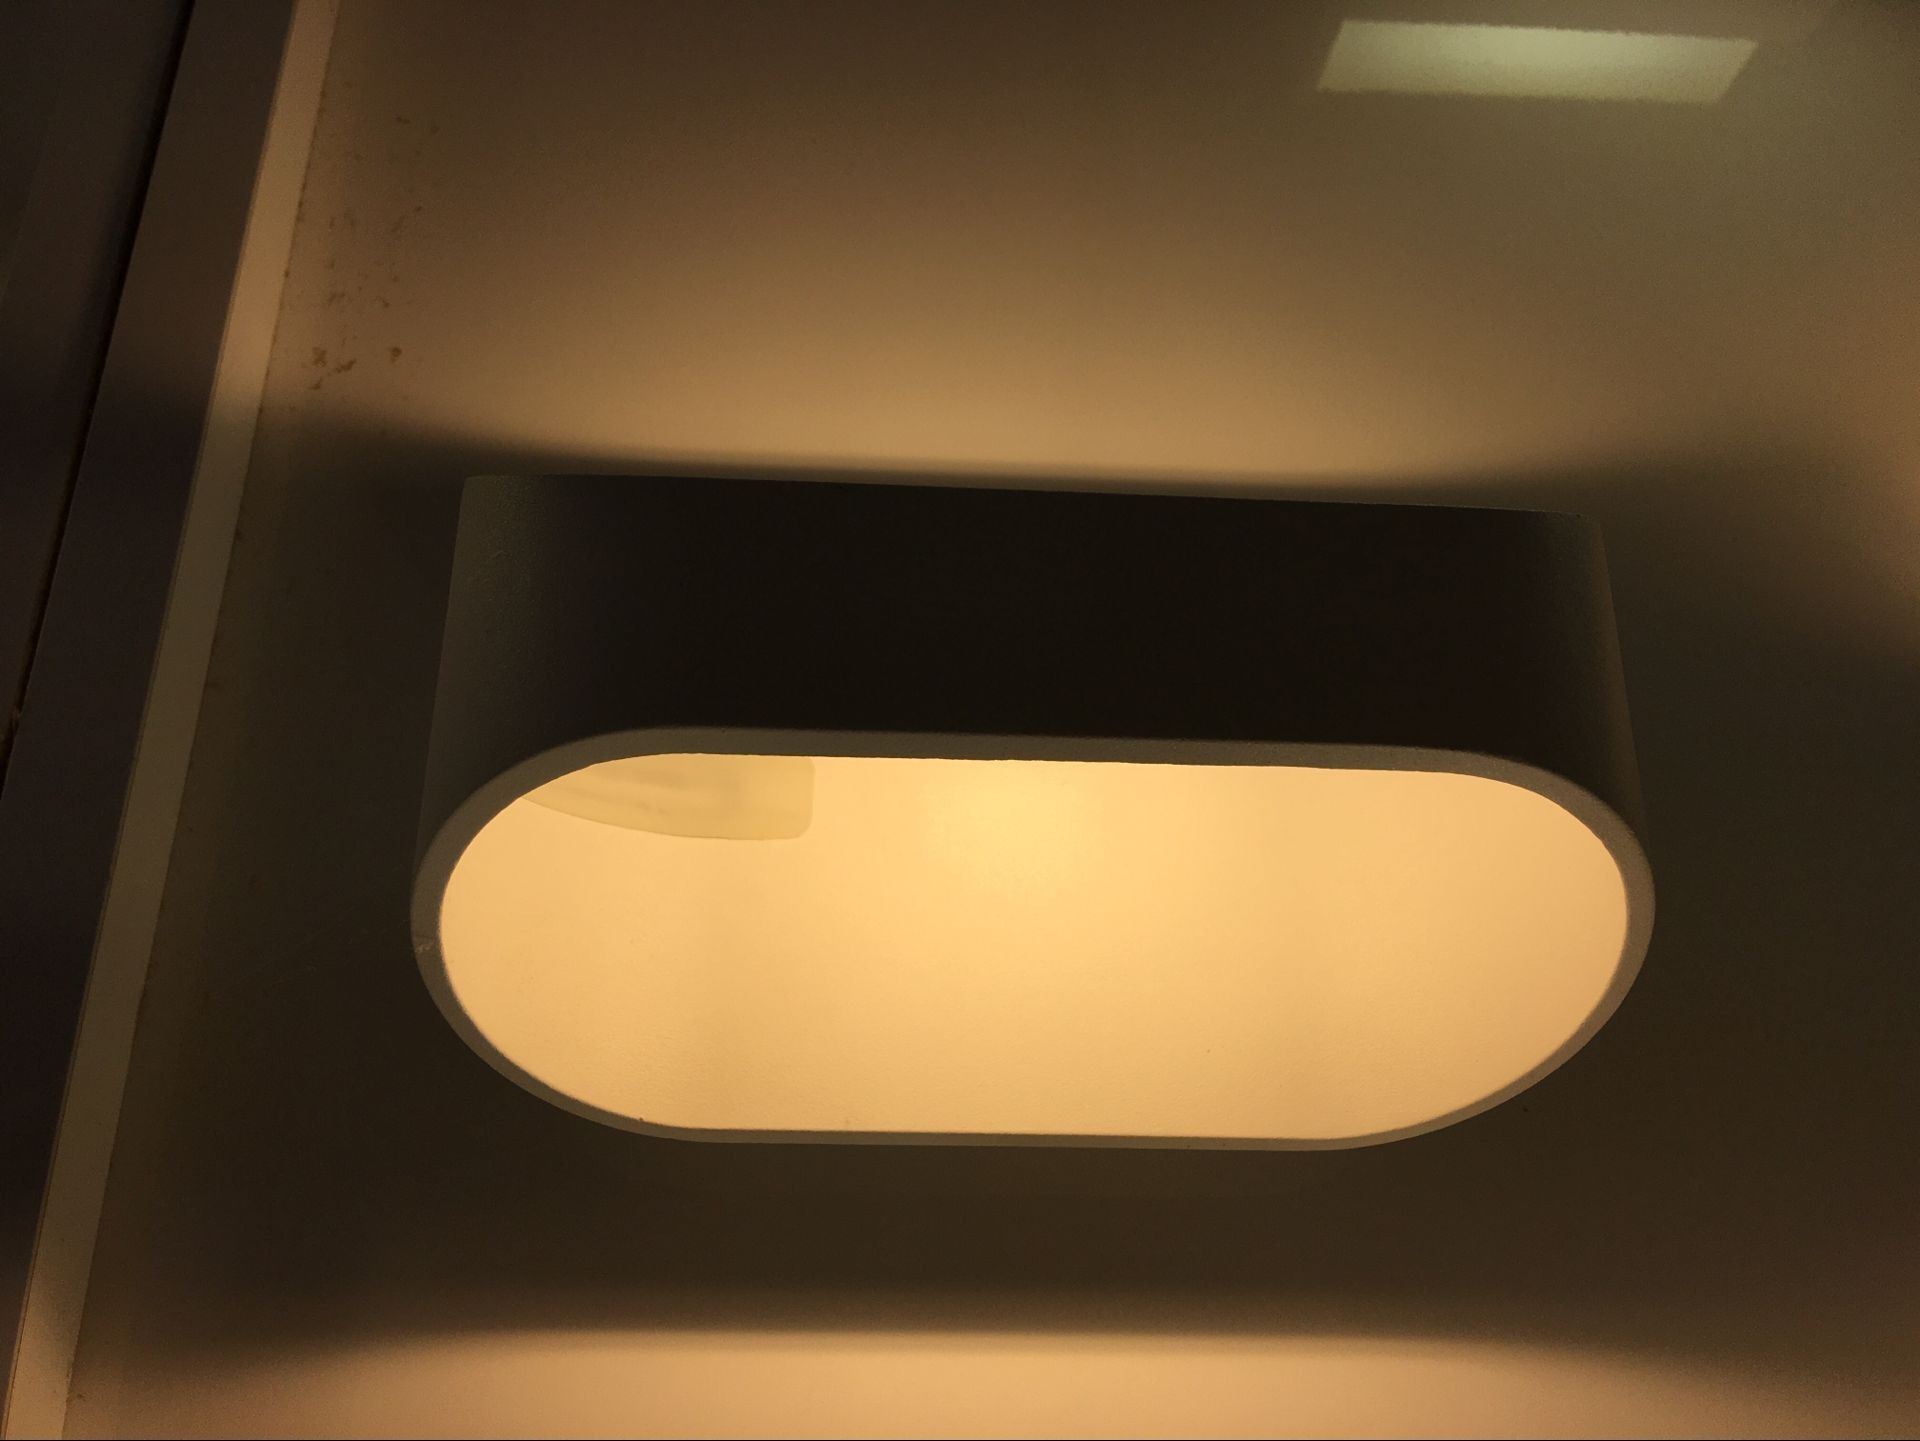 Global concept led wall surface mounted led wall light